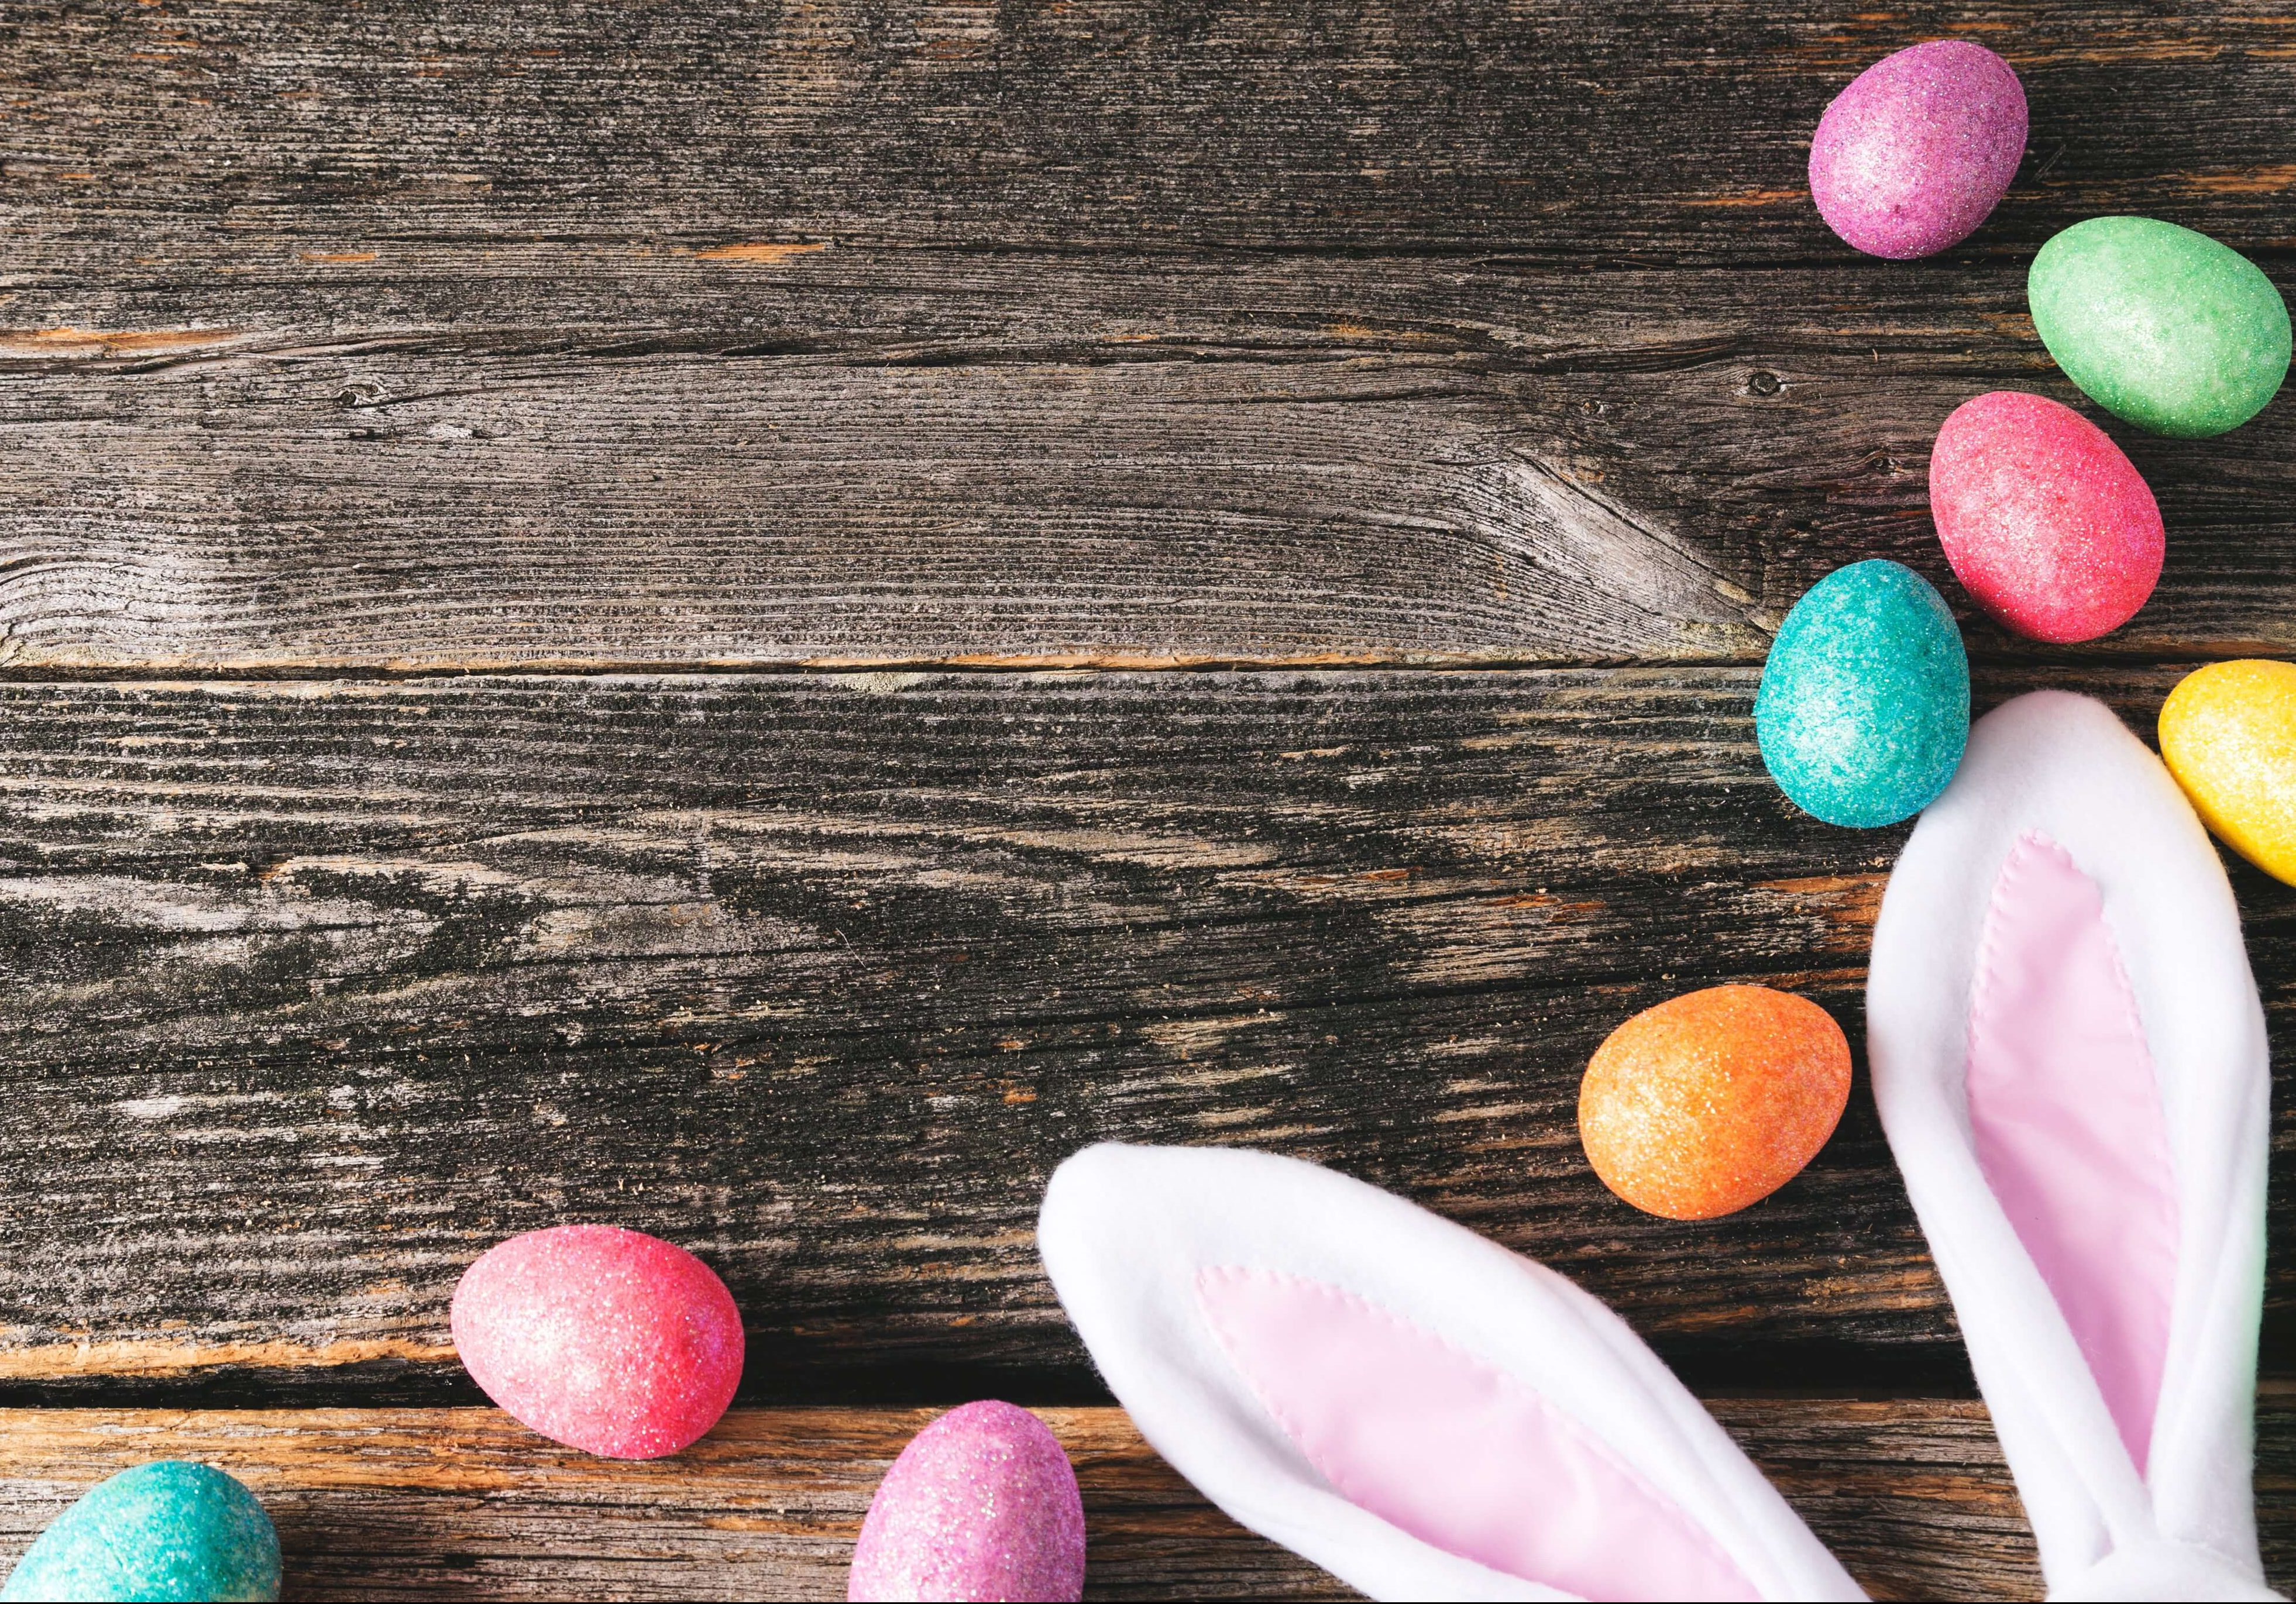 Image fro the blog Easter at Time for Forgiving and New Beginning. Easter bunny and easter eggs.